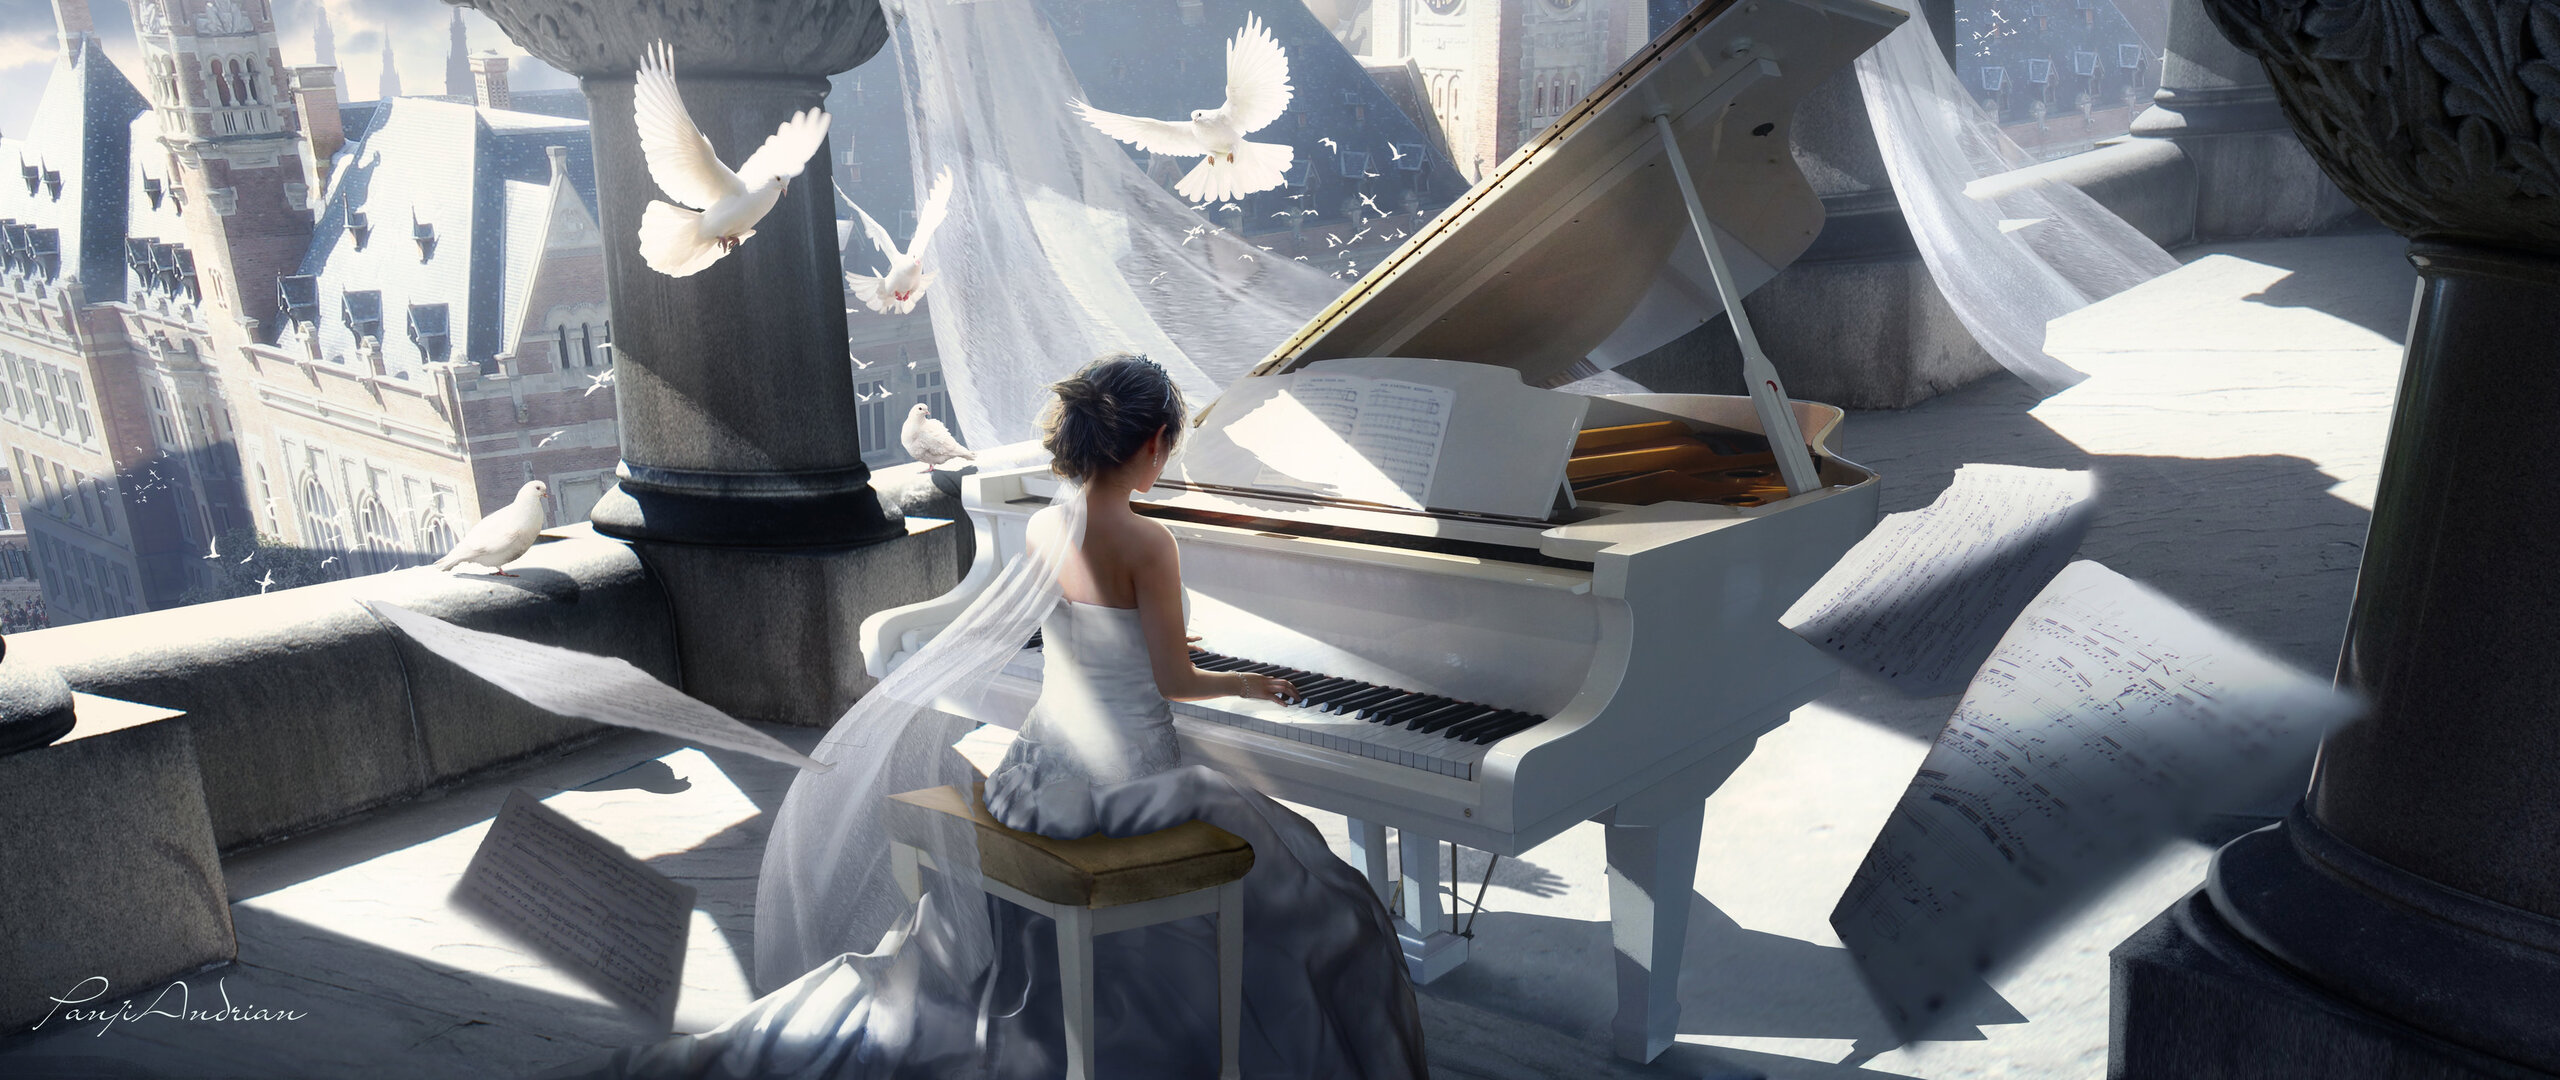 2560x1080 Girl Playing Piano Painting 4k 2560x1080 Resolution Hd 4k Wallpapers Images Backgrounds Photos And Pictures